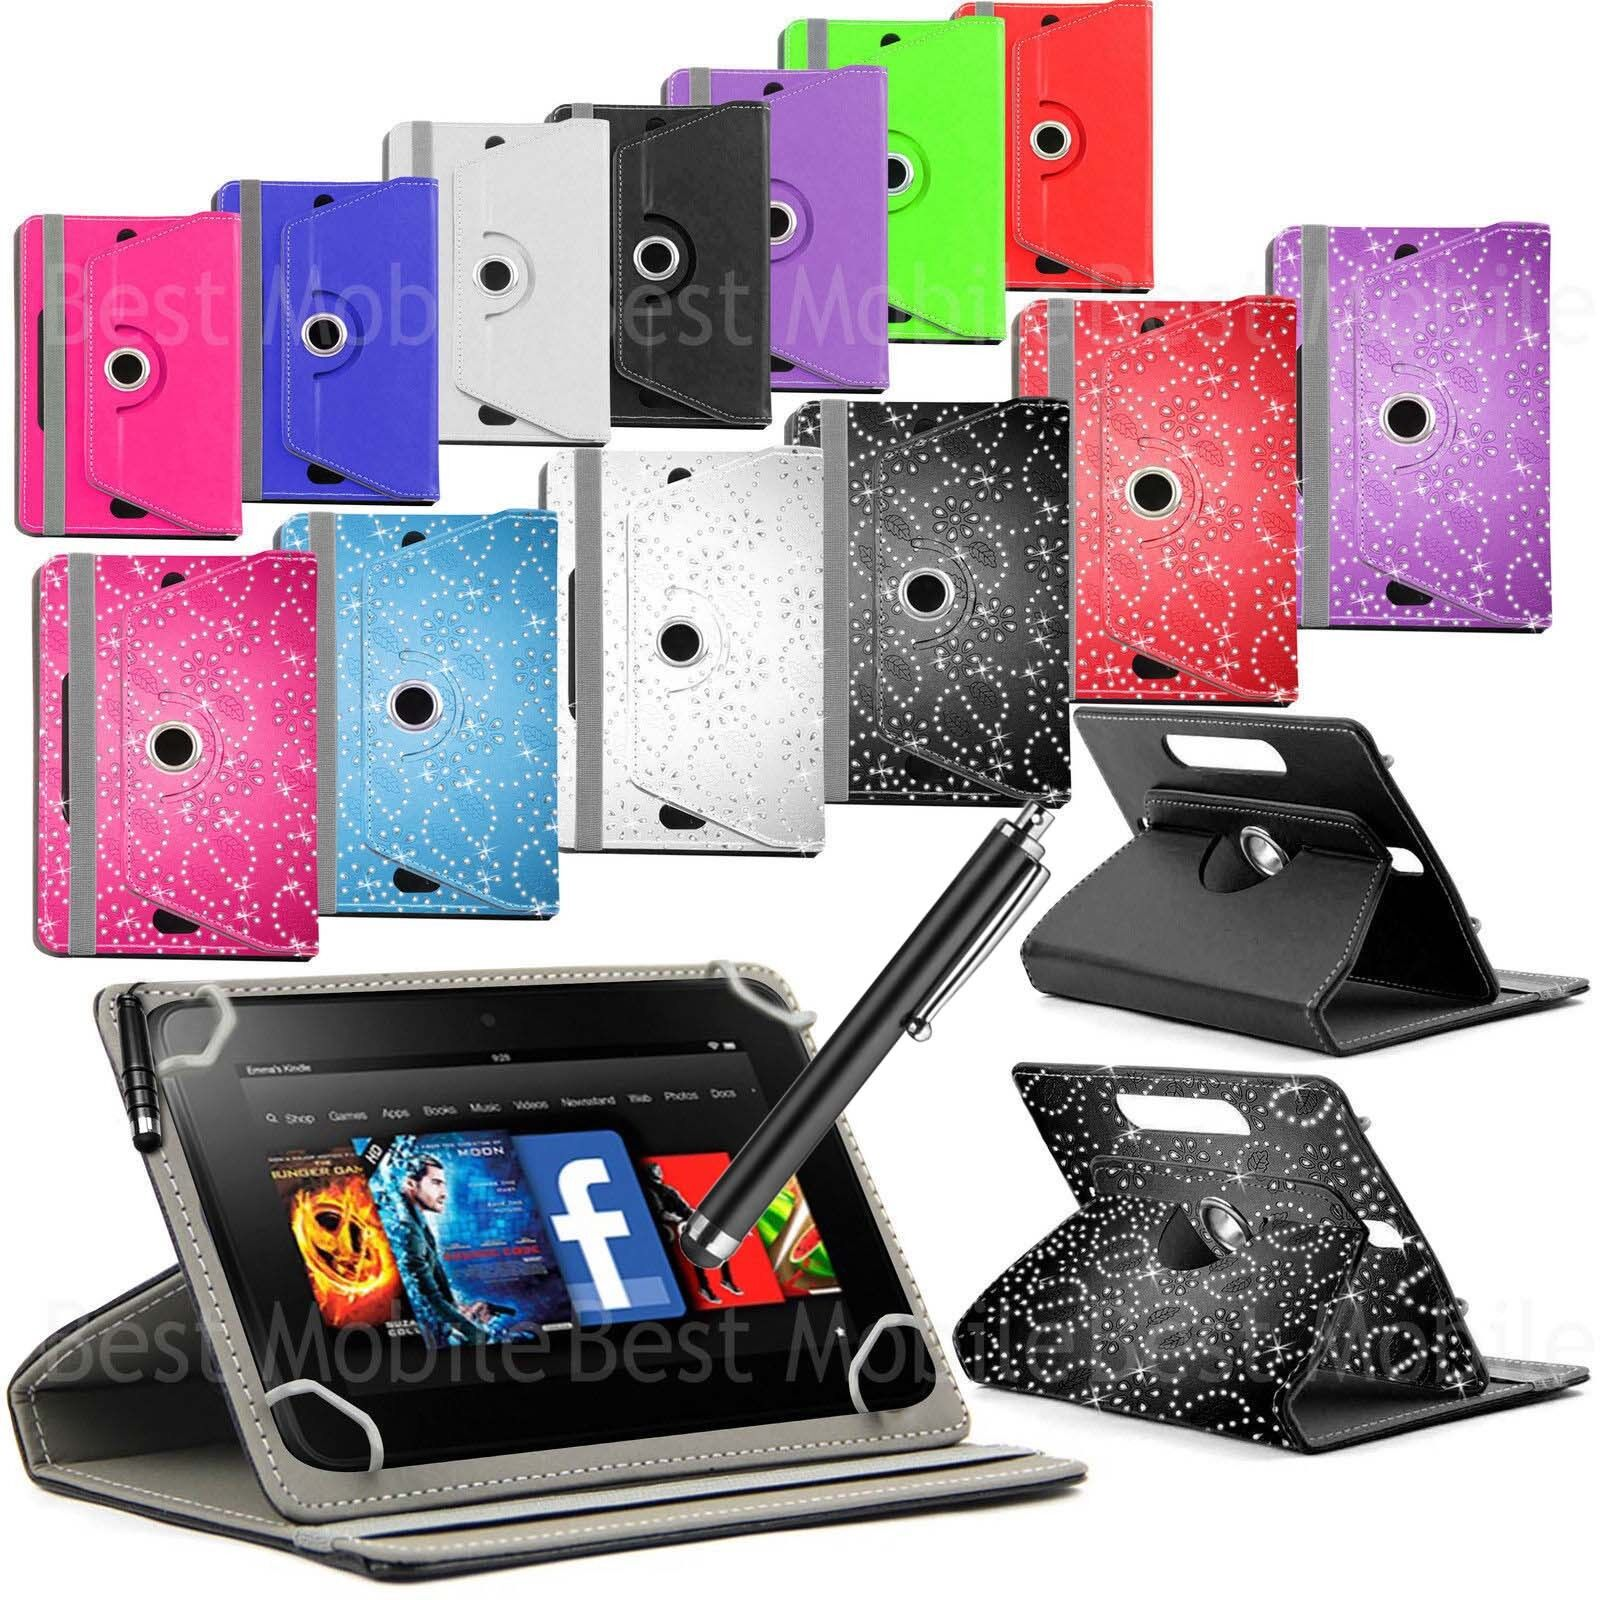 New Universal Case Folio Leather Cover For Android Tablet PC